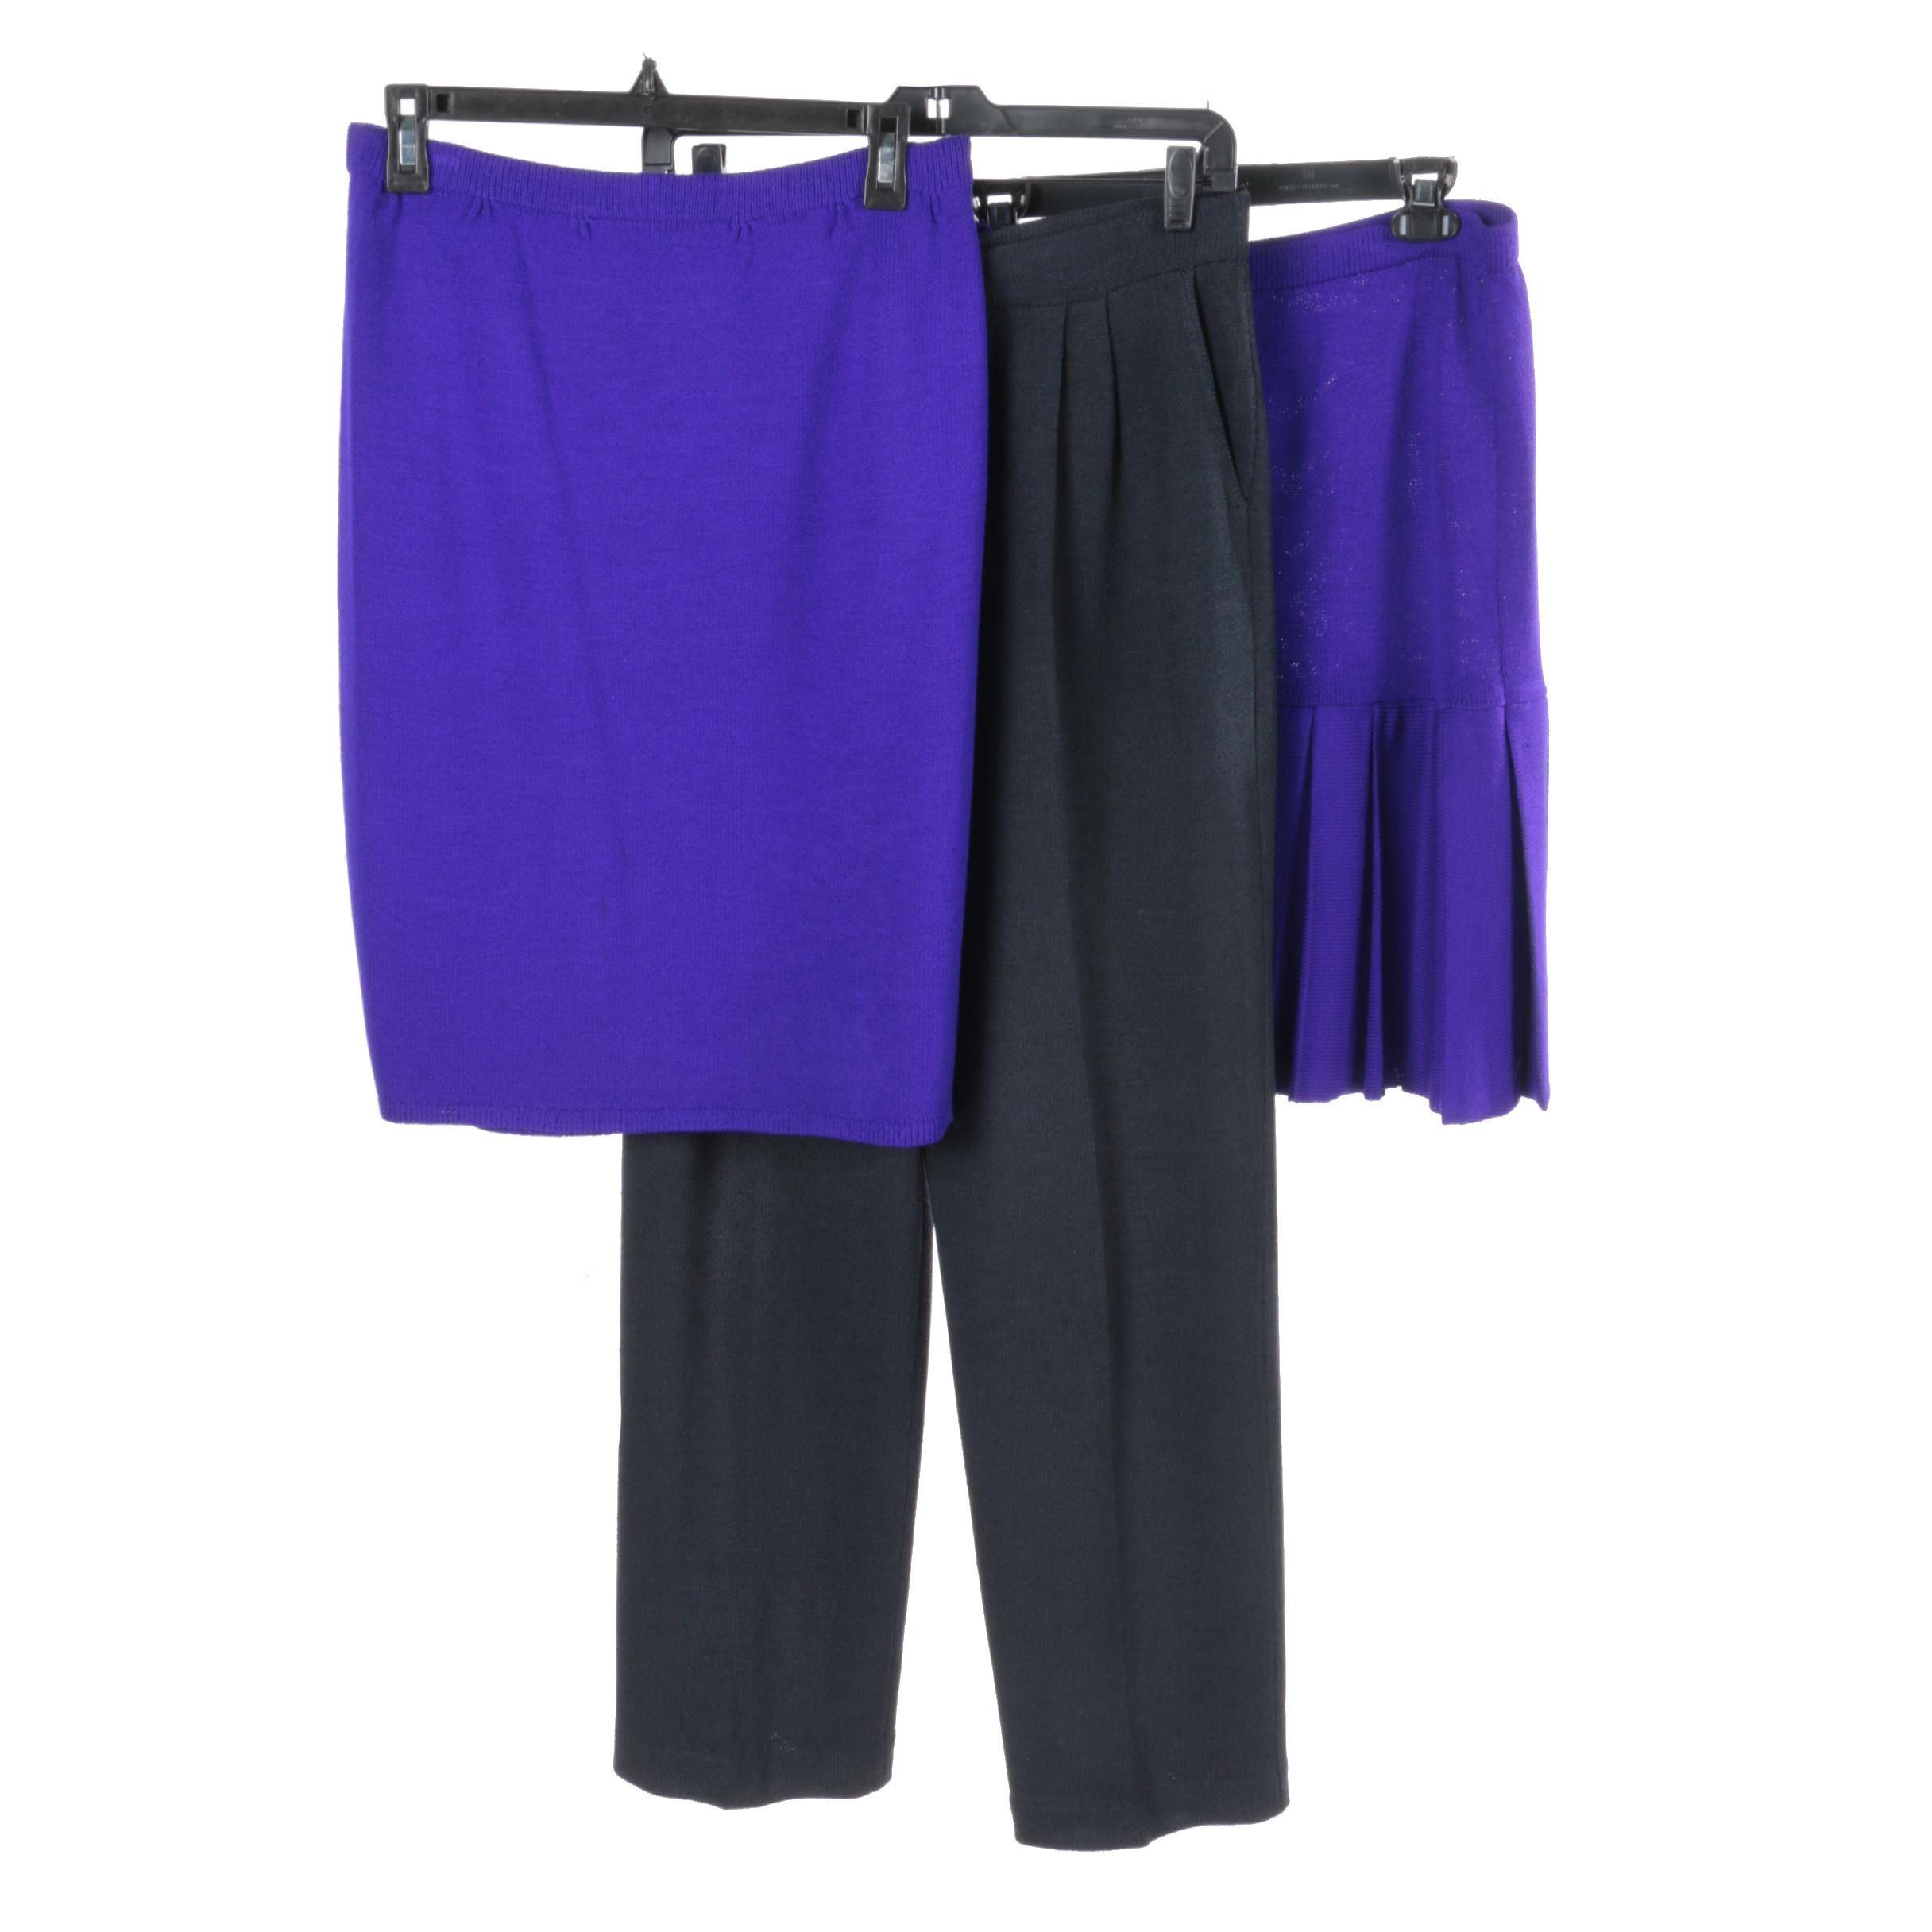 St. John Clothing Including Pants and Skirts